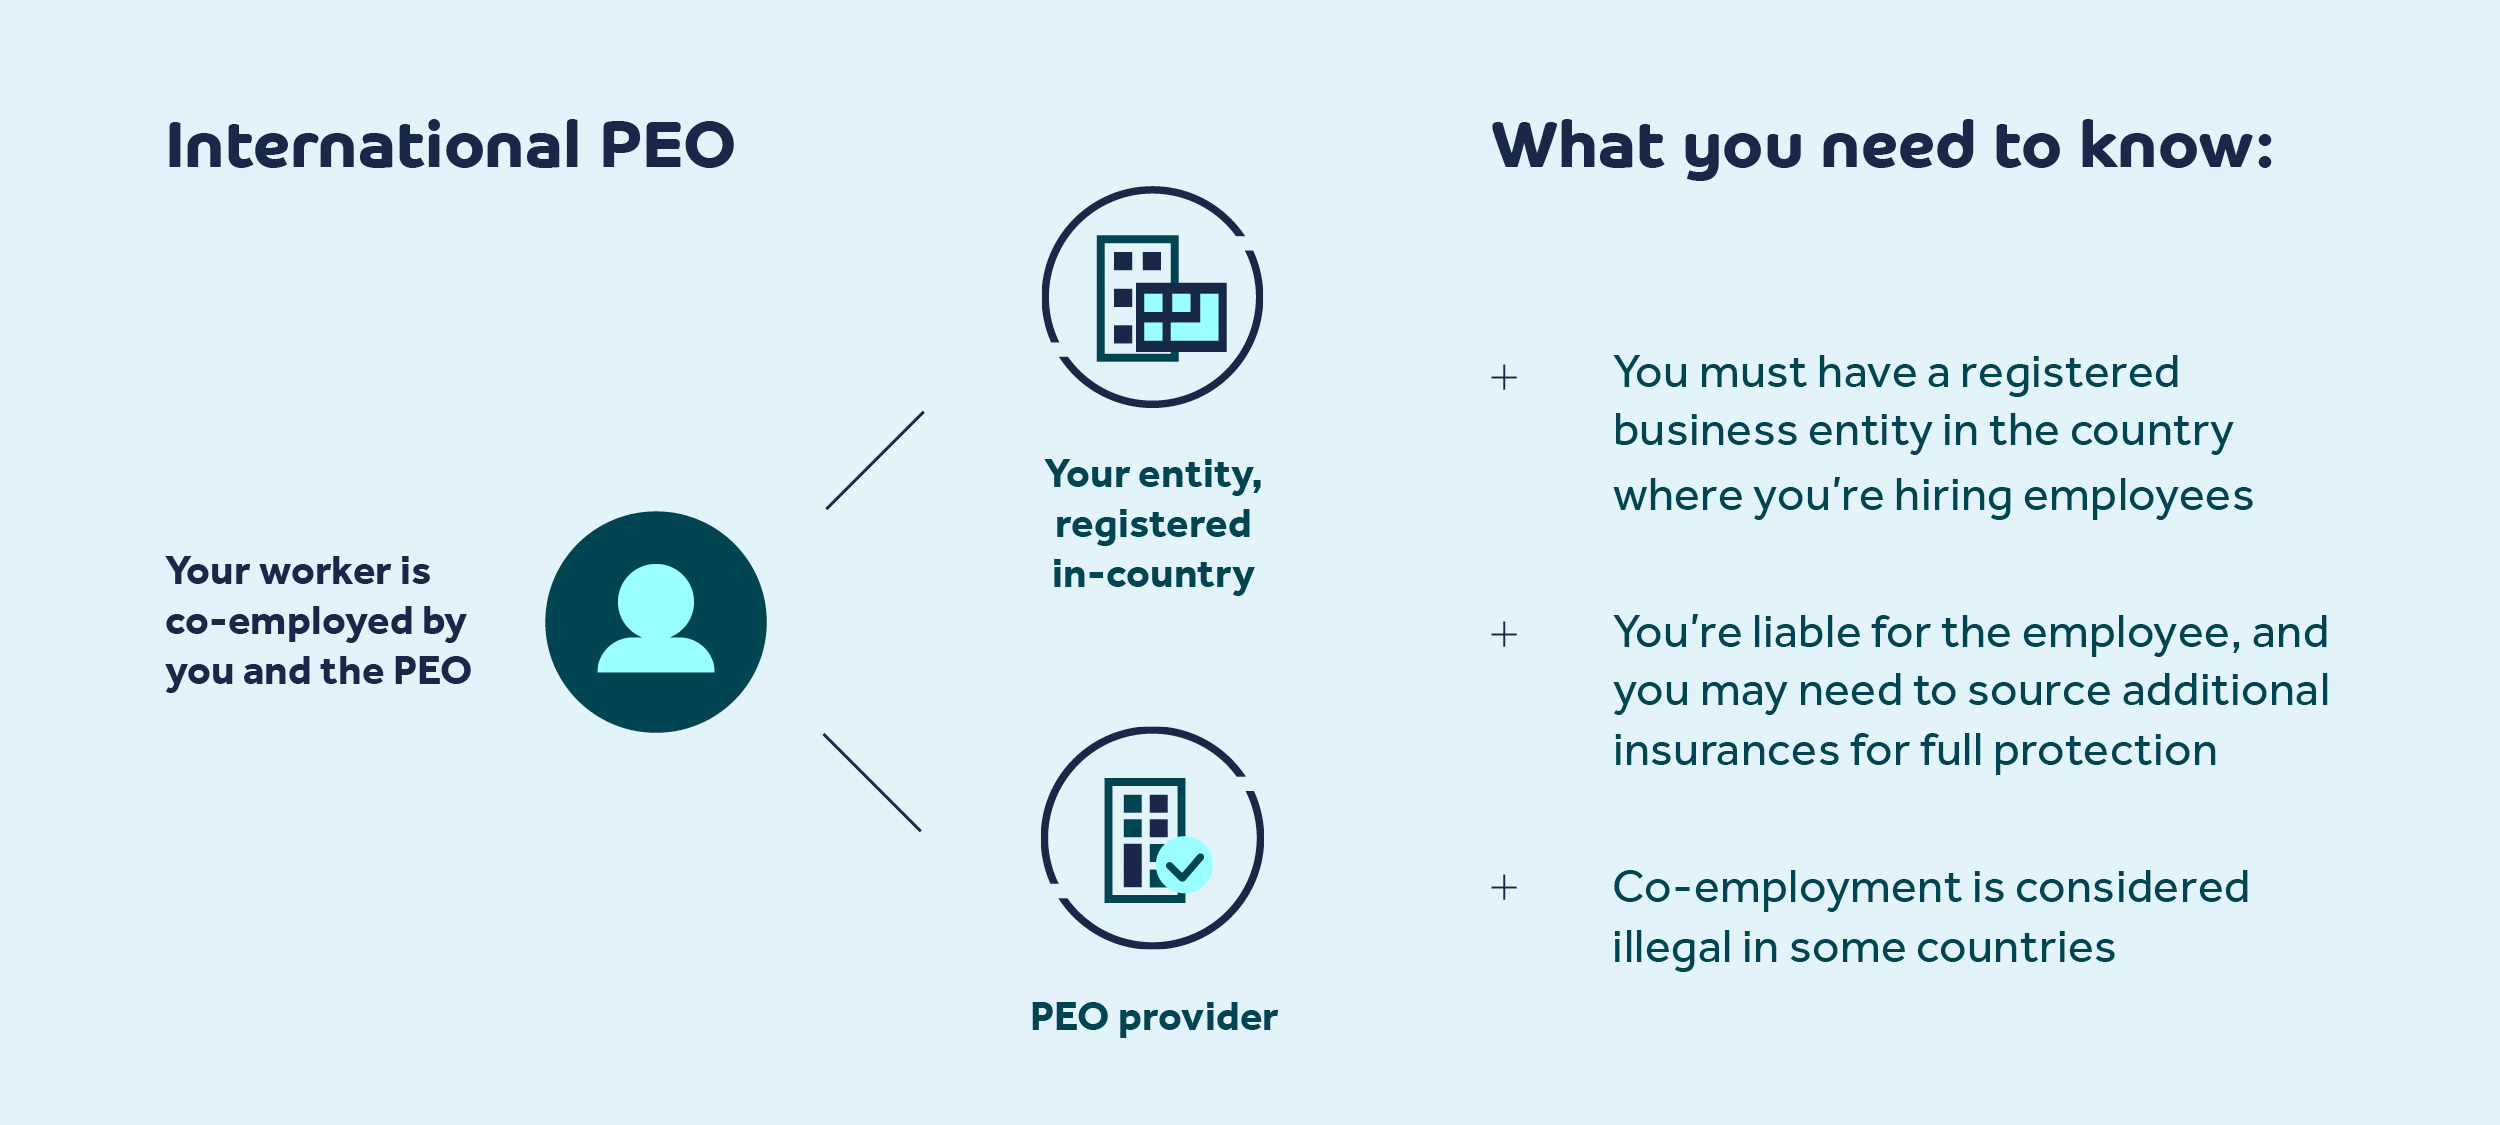 co-employment and international peo